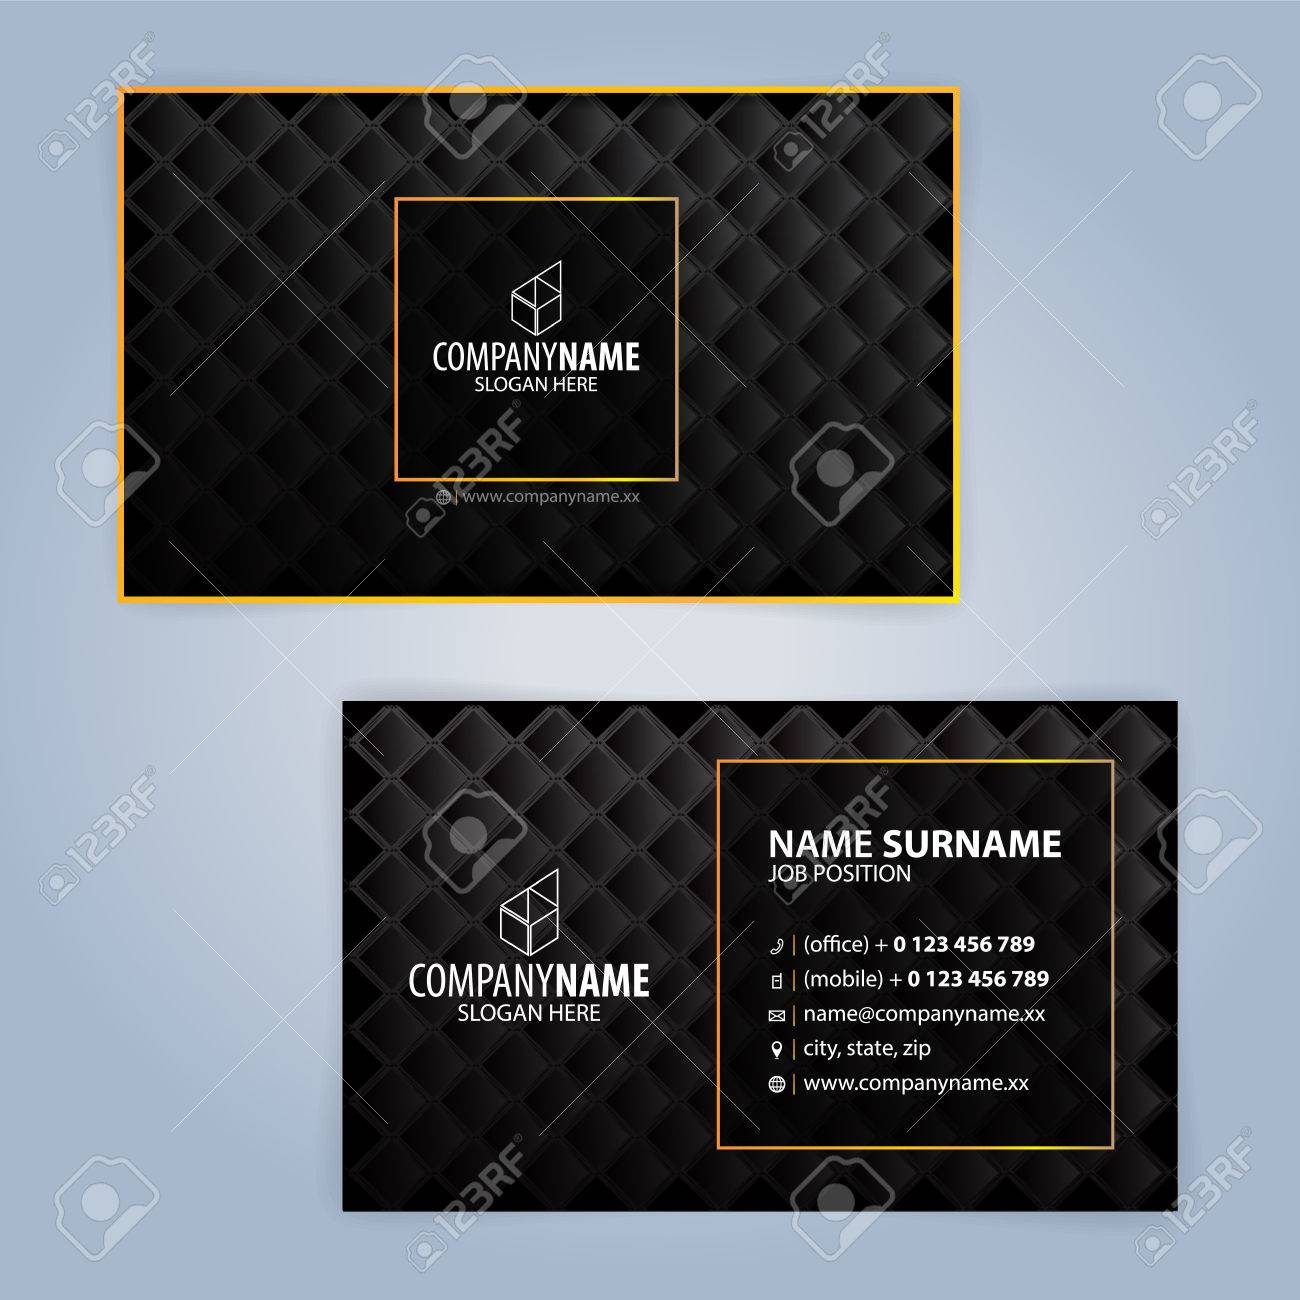 Business card design templates luxury graphic design royalty free banco de imagens business card design templates luxury graphic design reheart Image collections